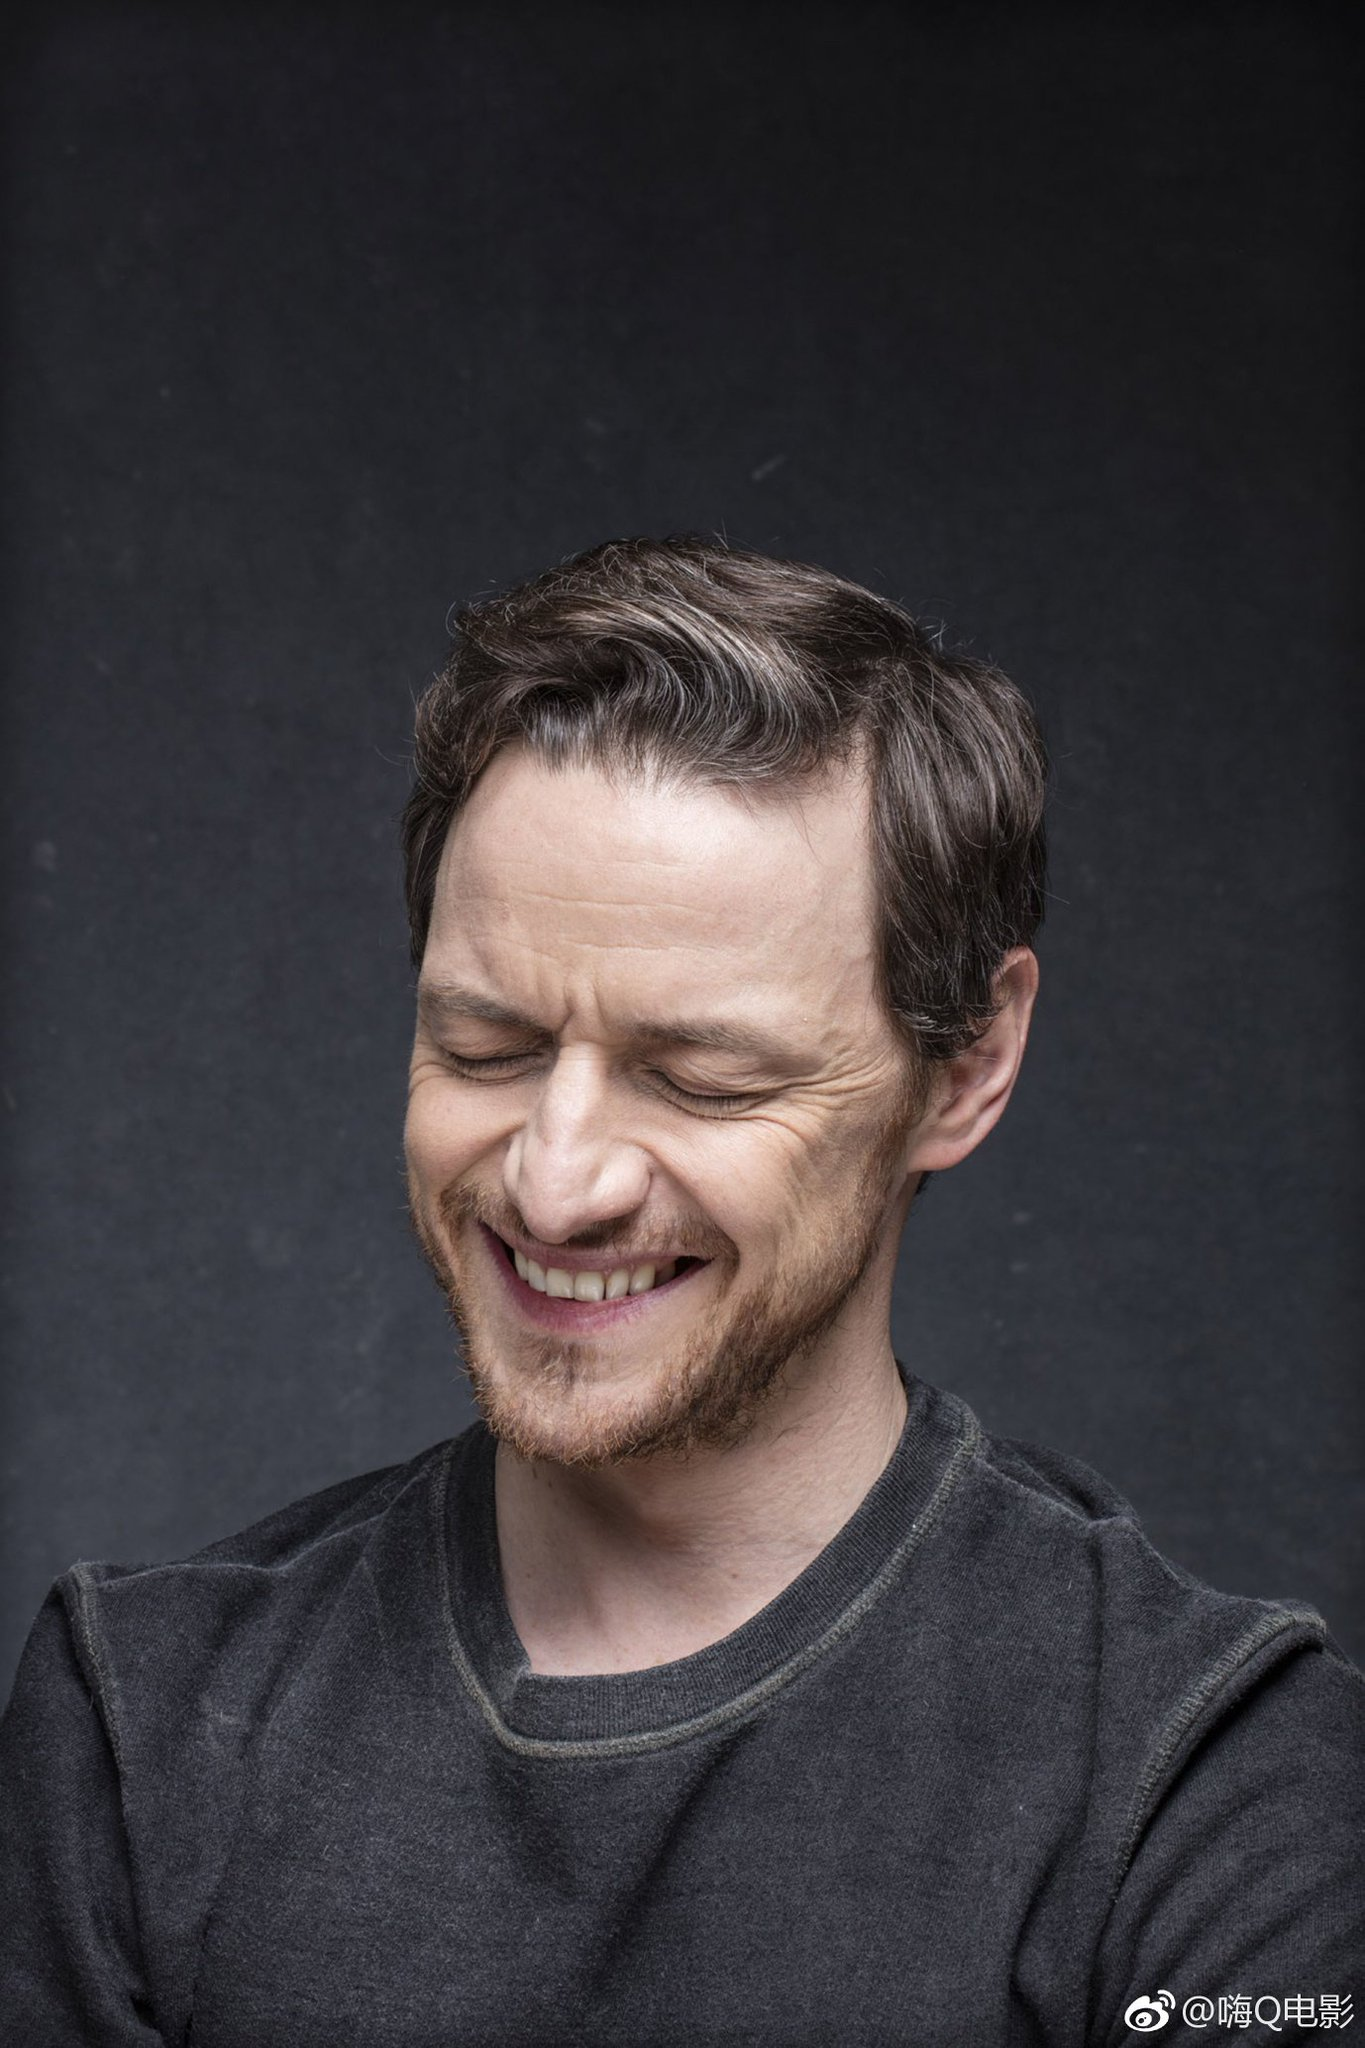 Happy birthday to my mans james mcavoy. i love him so much. he deserves the world and then some